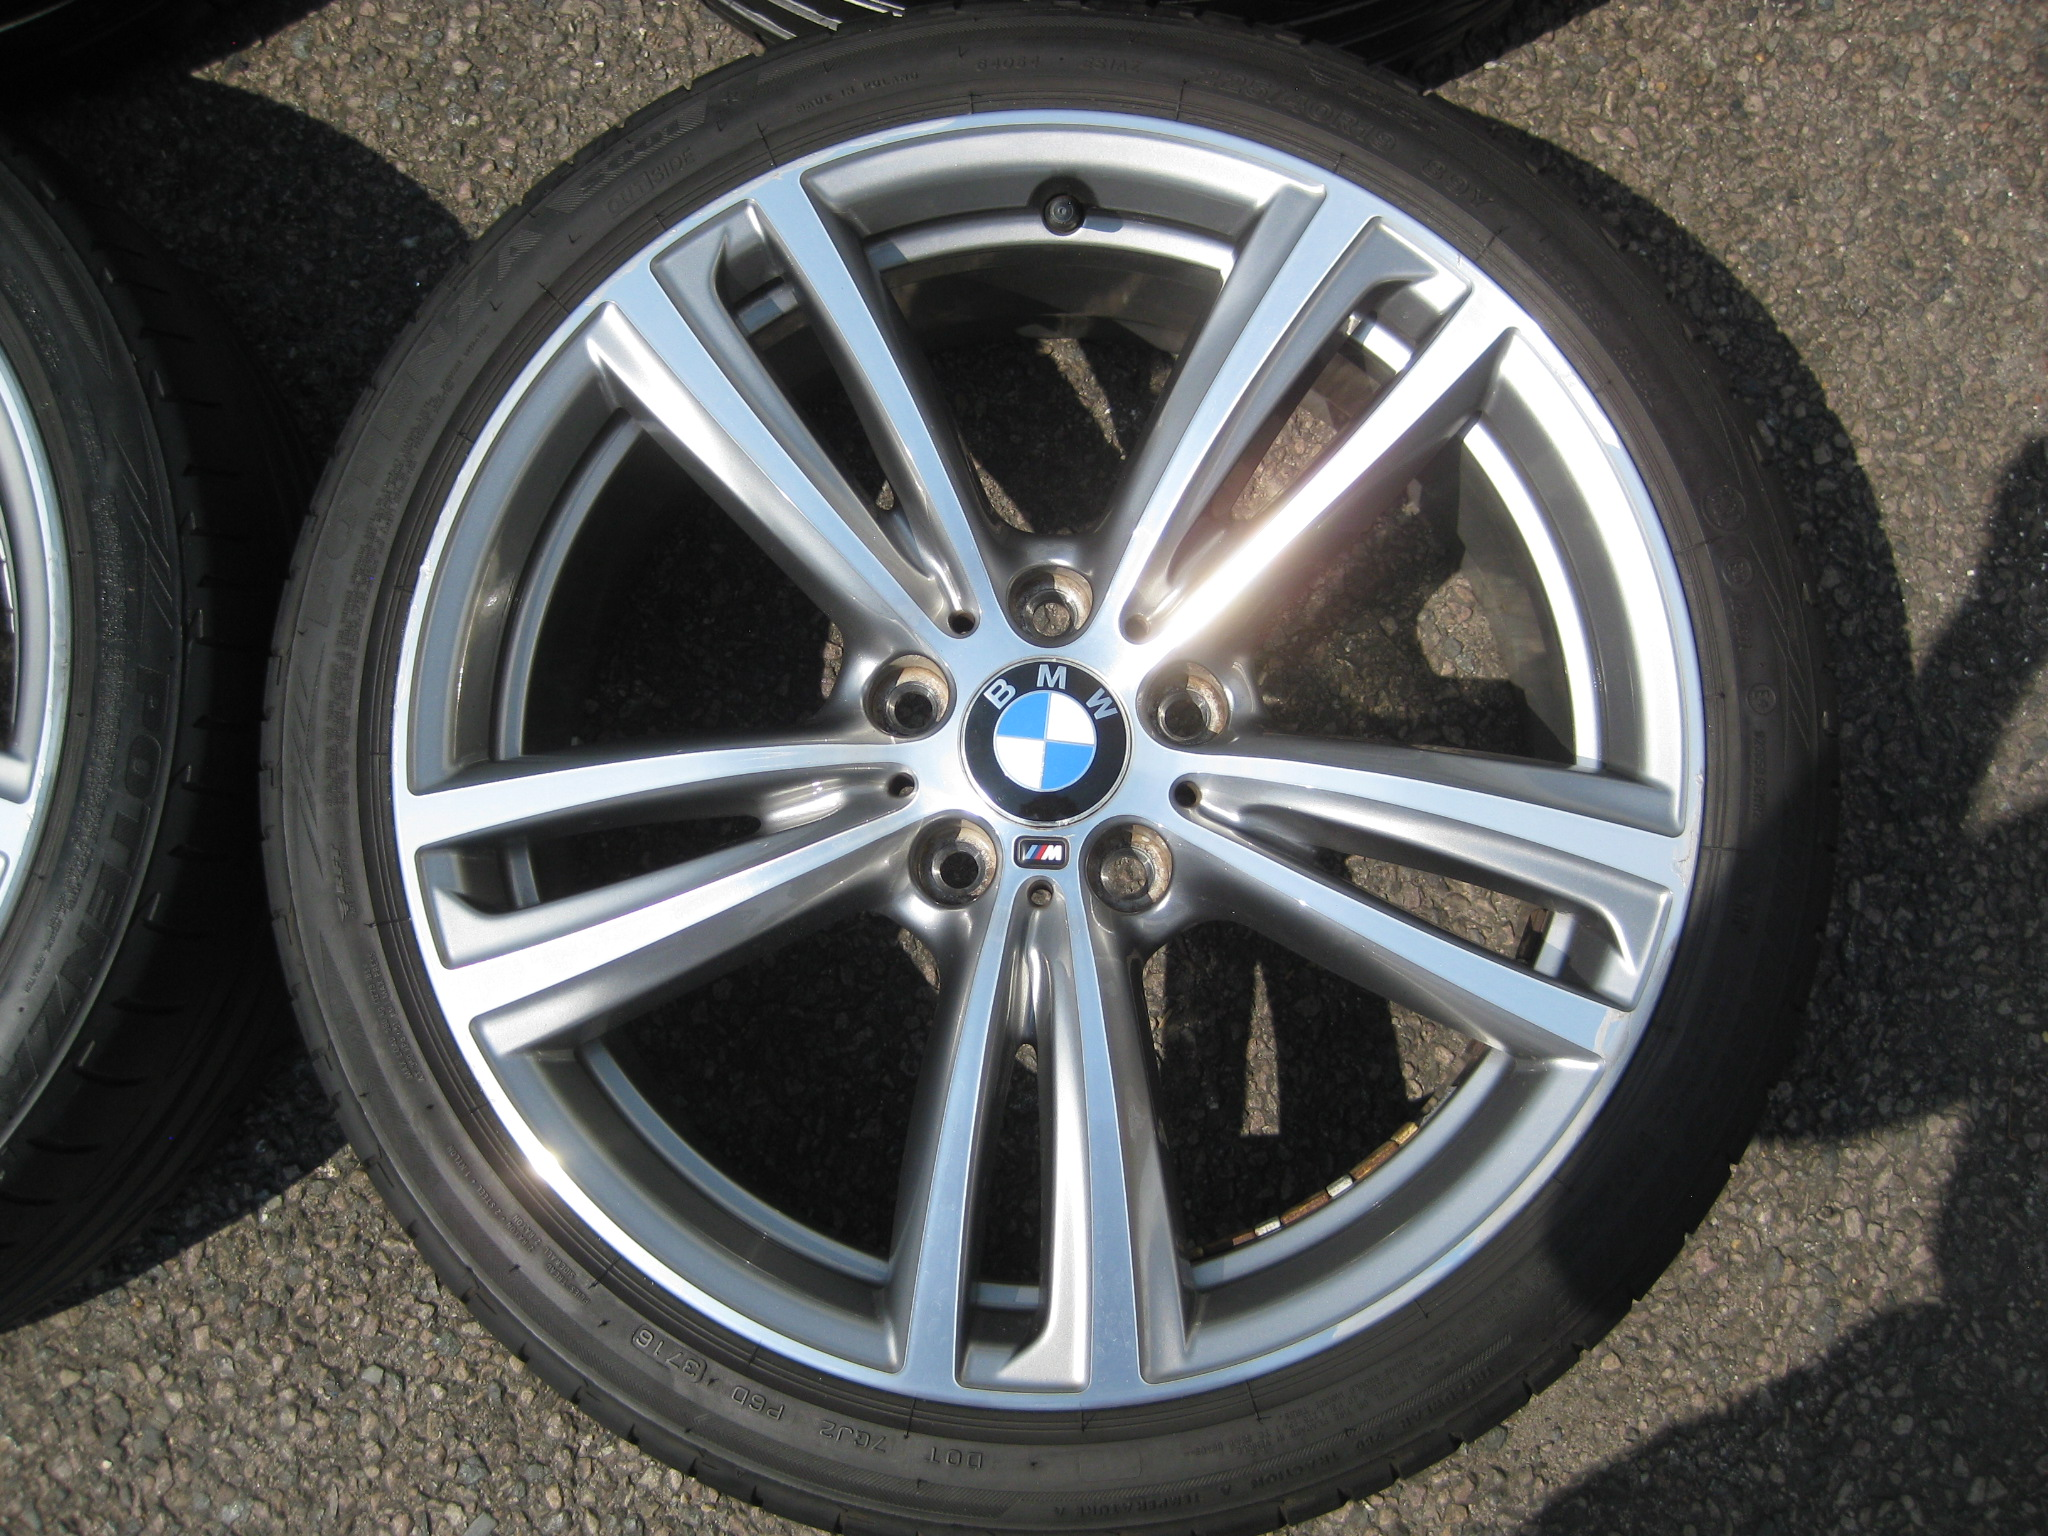 "USED 19"" GENUINE STYLE 442 F30/31 M DOUBLE SPOKE ALLOY WHEELS, GOOD CONDITION INC GOOD BRIDGESTONE RUNFLAT TYRES"